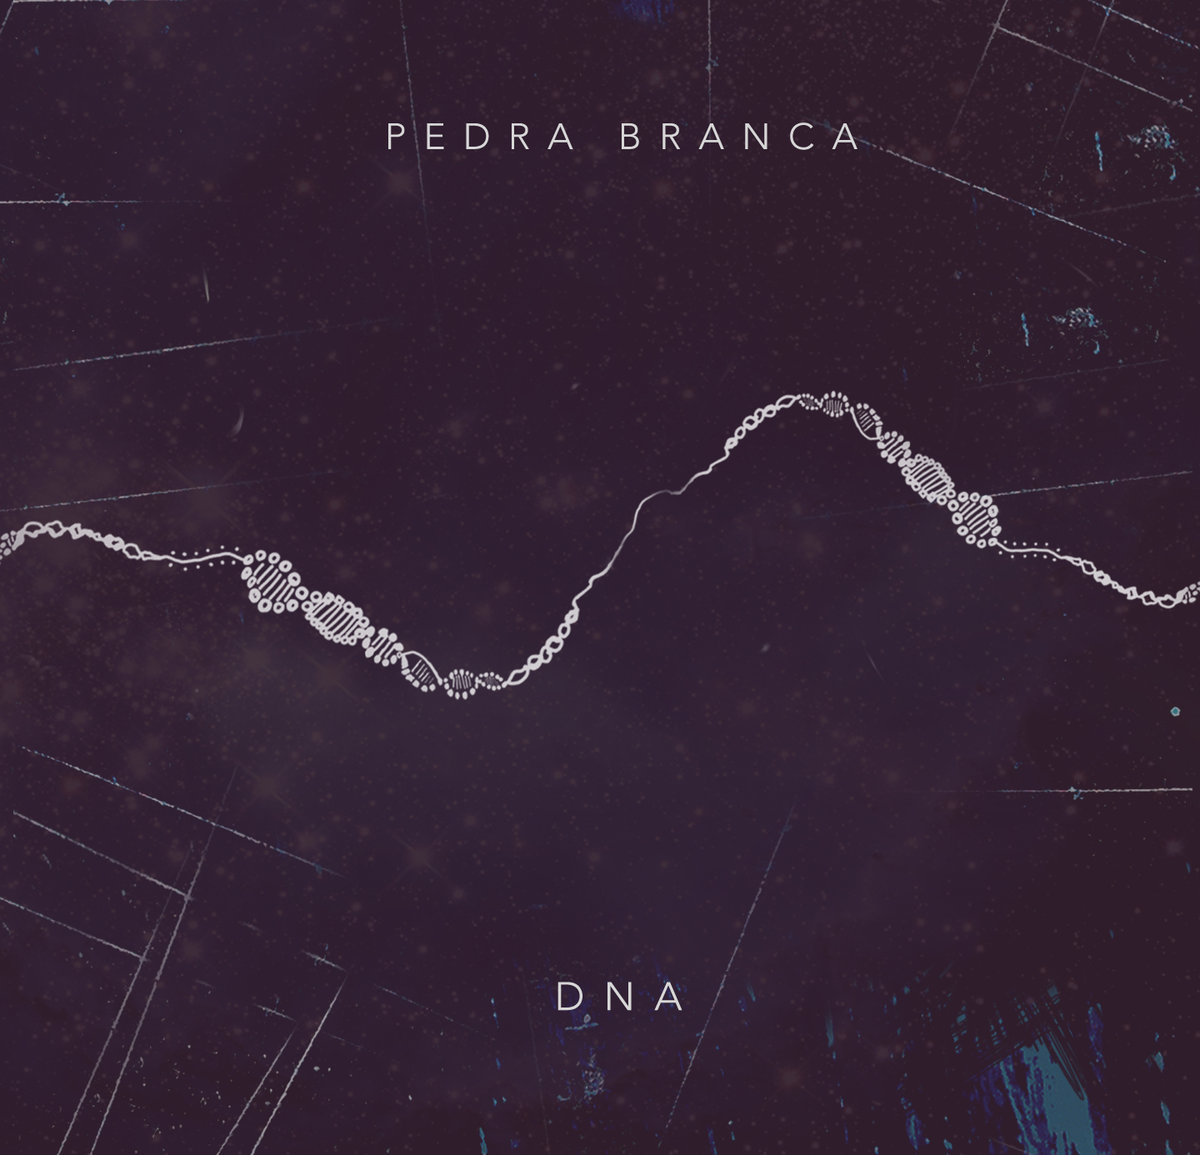 Pedra Branca - DNA (artwork)